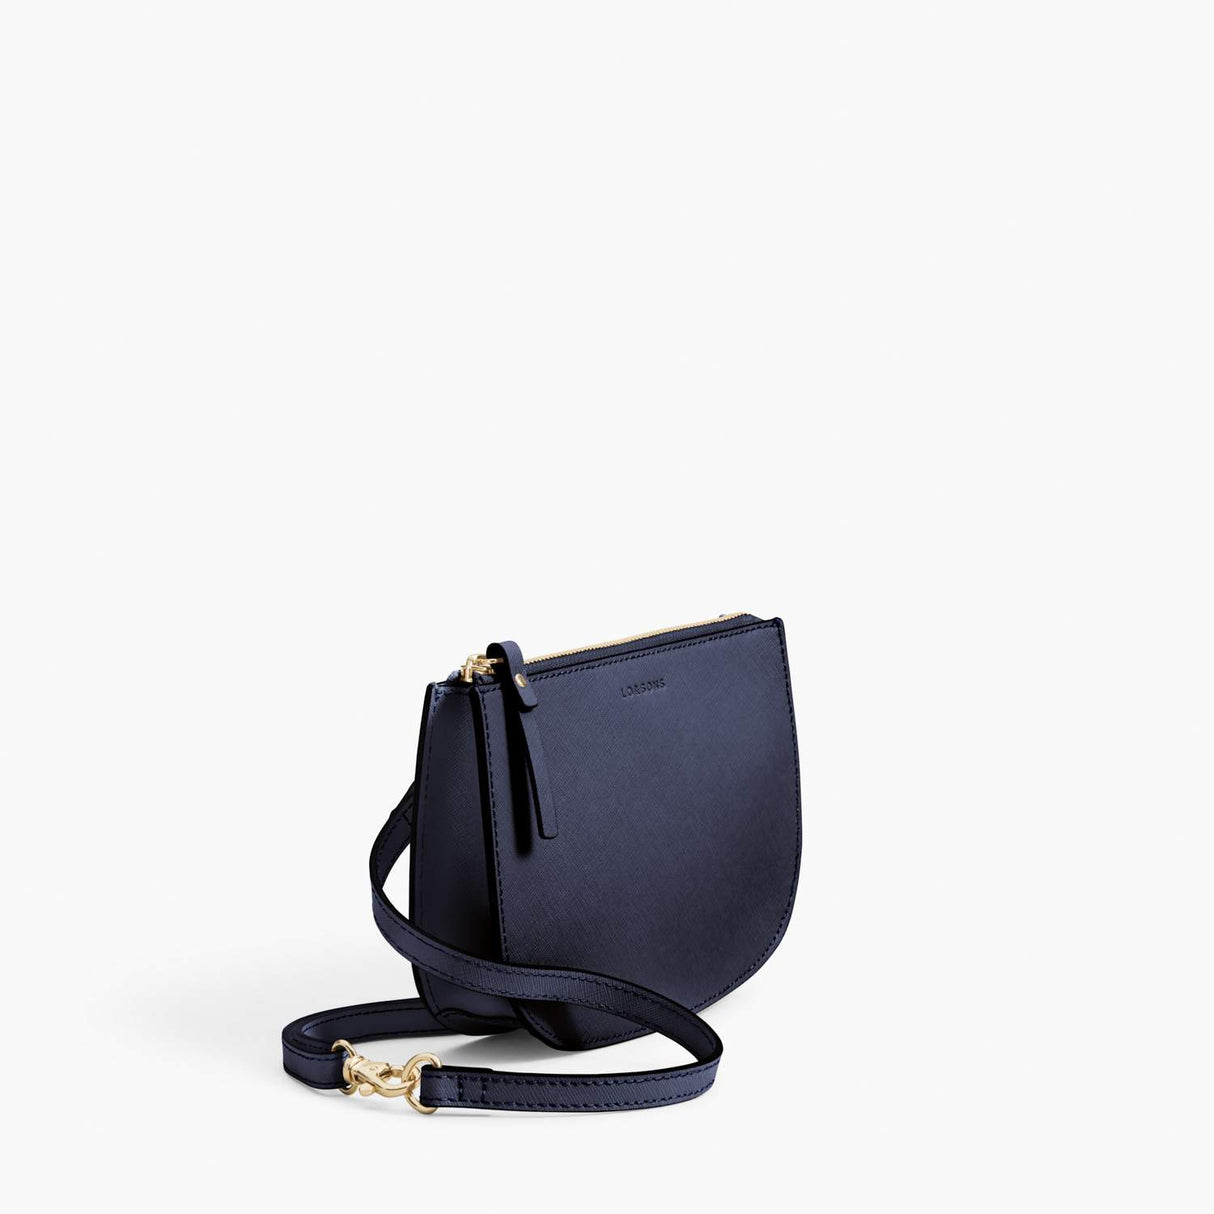 Side - Waverley 2 - Saffiano Leather - Deep Navy / Gold / Camel - Crossbody Bag - Lo & Sons